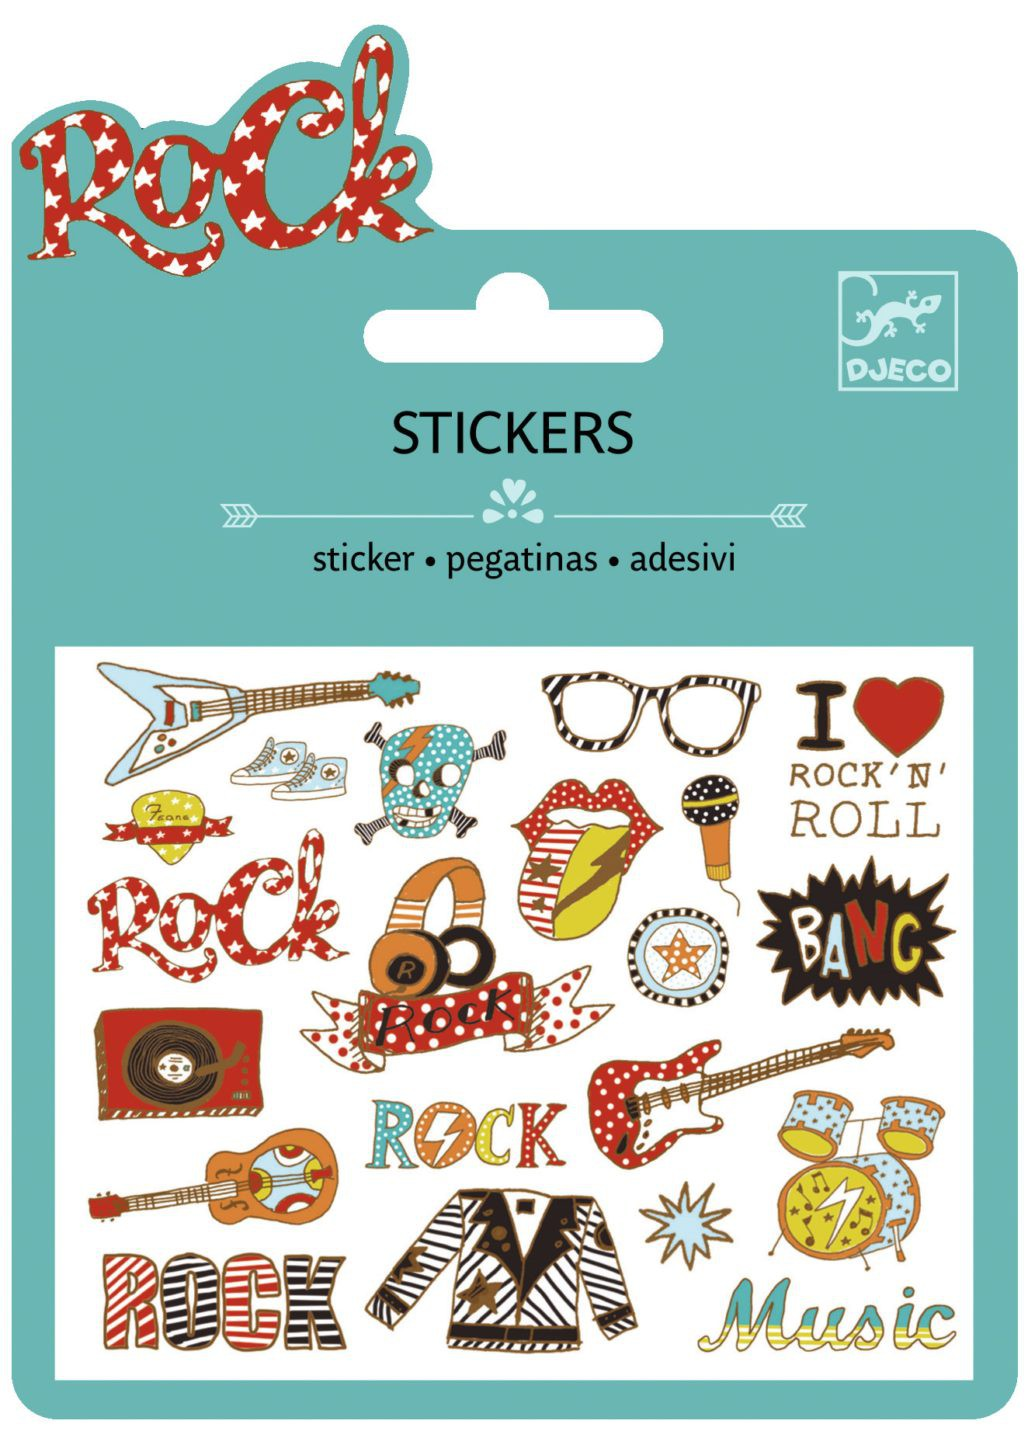 25 Stickers - Pop i Rock